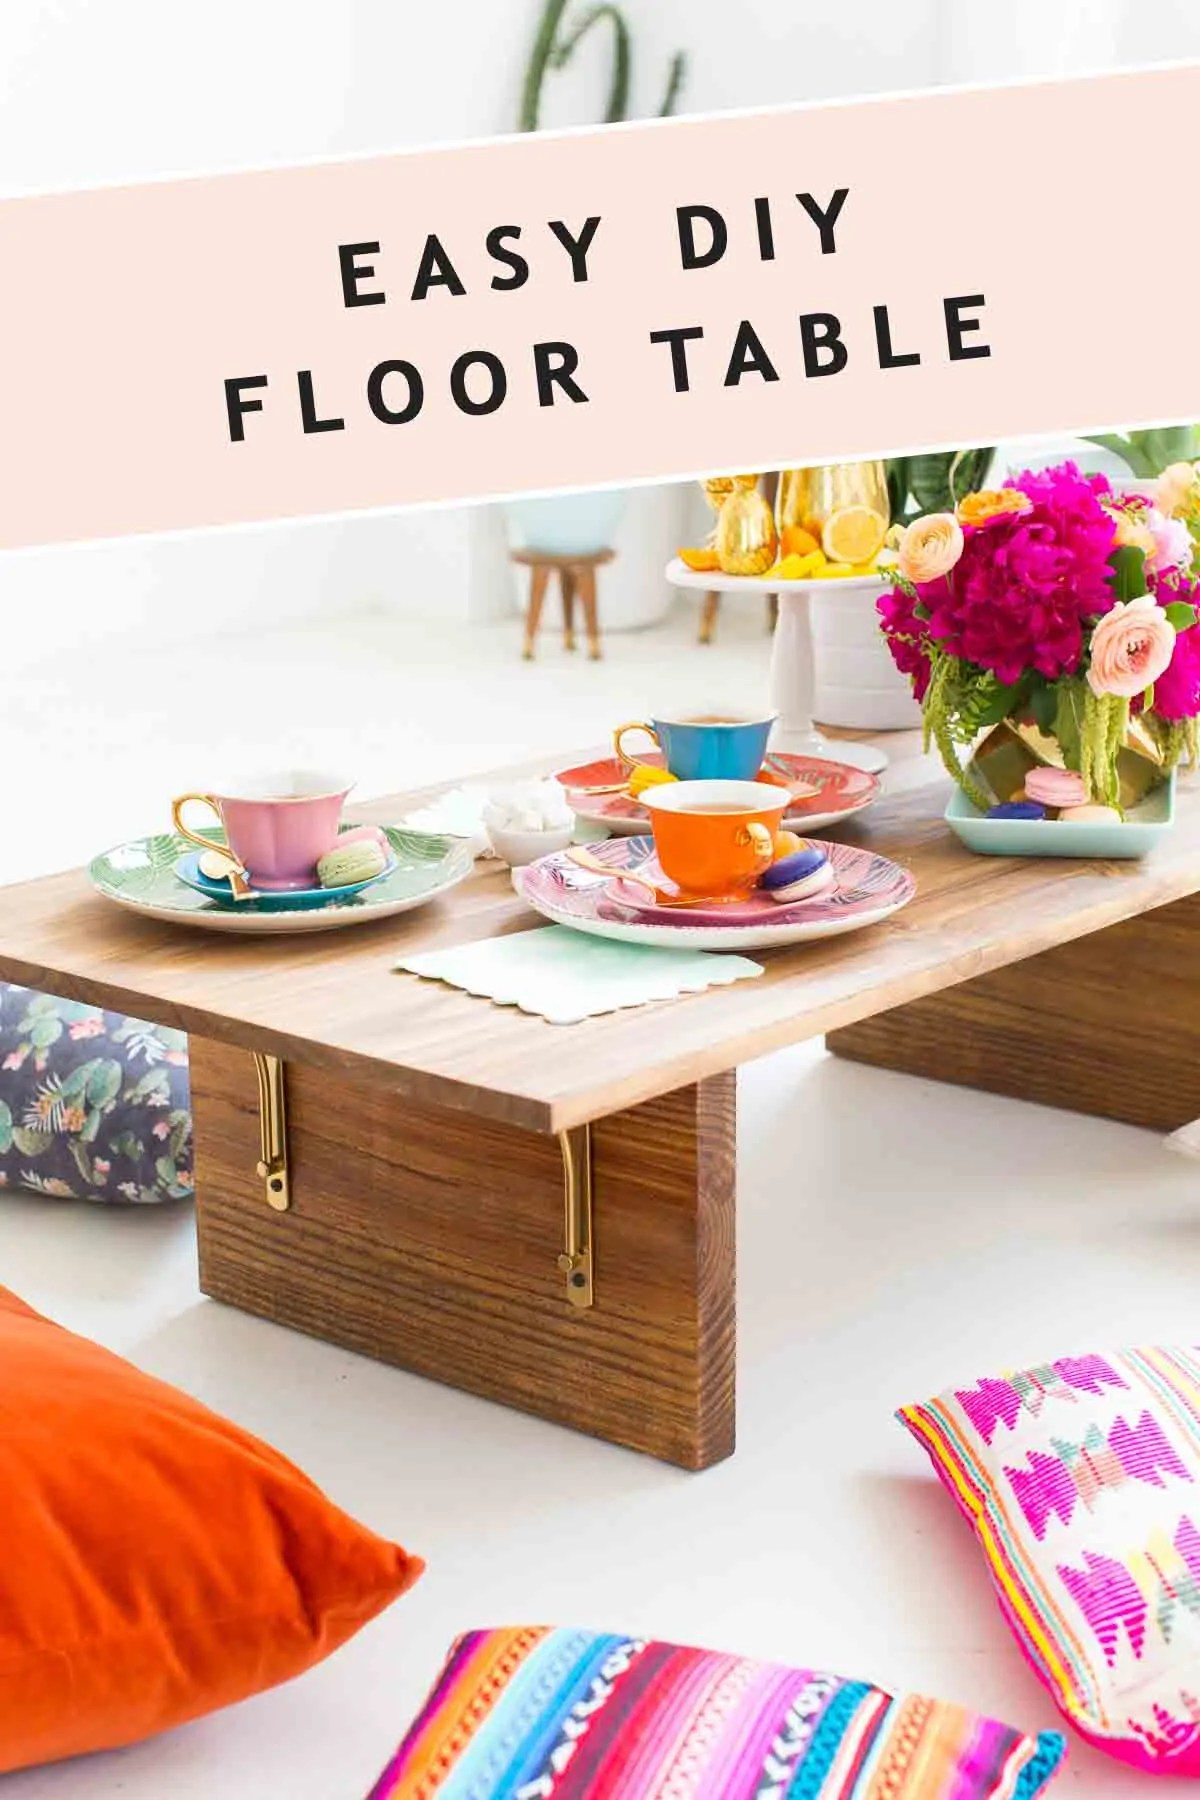 Floor Seating Idea Diy Floor Table Decor Diy By Sugar - Diy Table Using Flooring